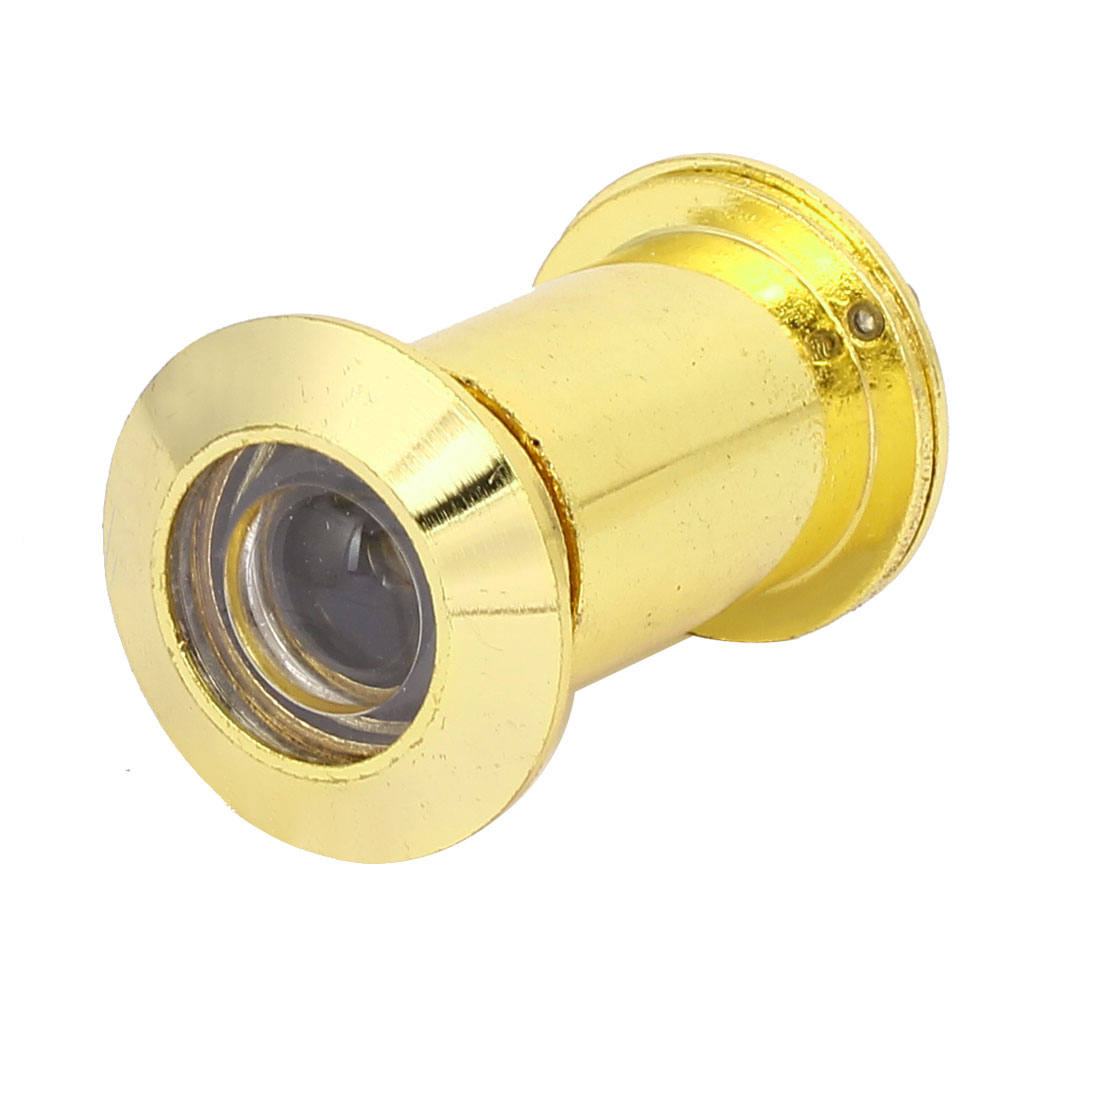 26mm Diameter 220 Degree Wide Angle Door Viewer Peephole Gold Tone